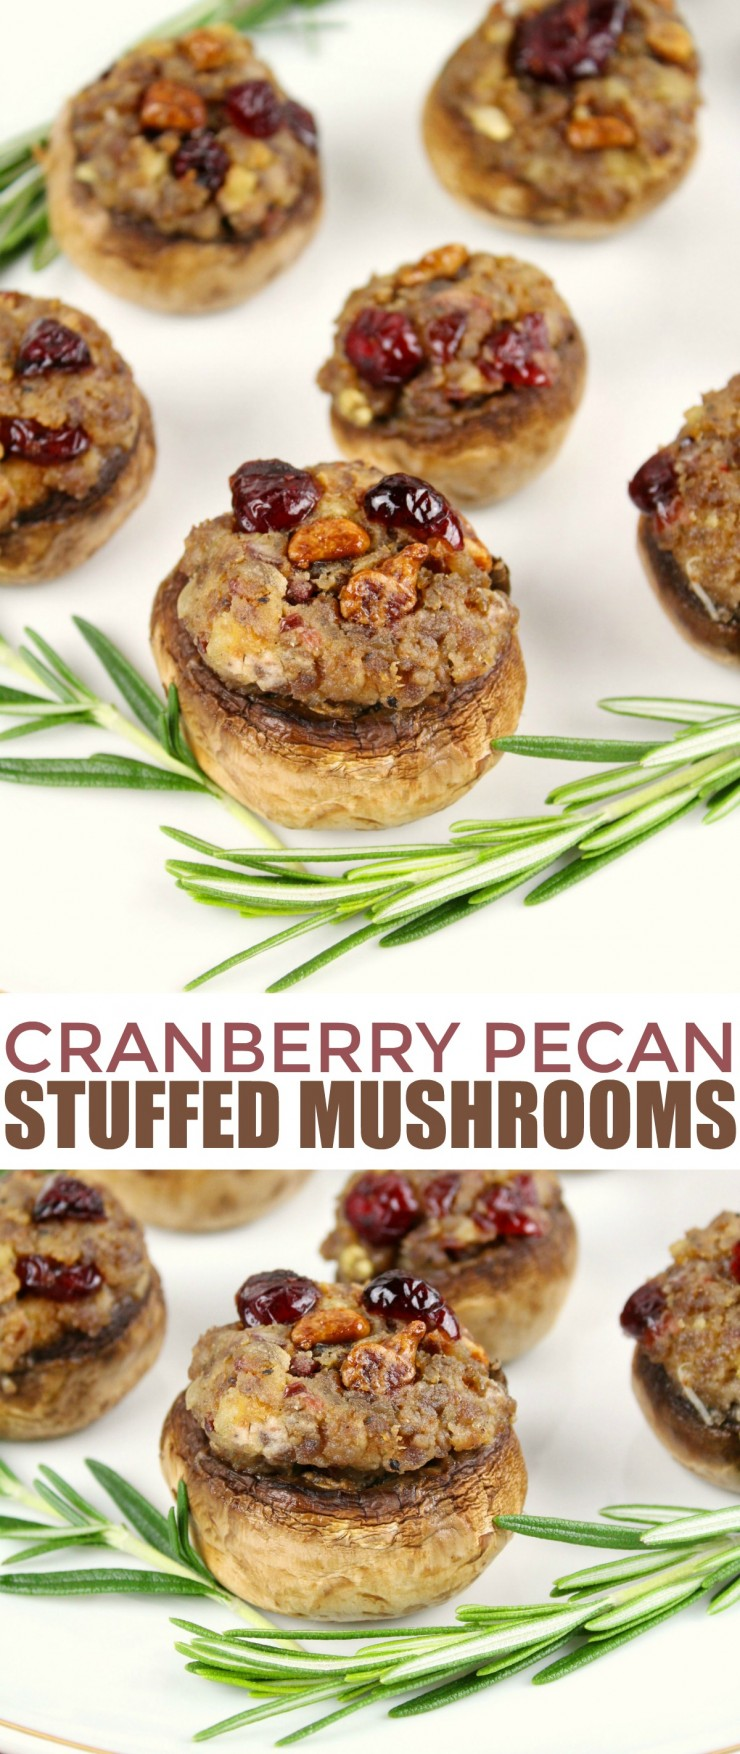 These Cranberry Pecan Stuffed Mushrooms with Goat Cheese are a tasty holiday appetizer that will impress your guests.